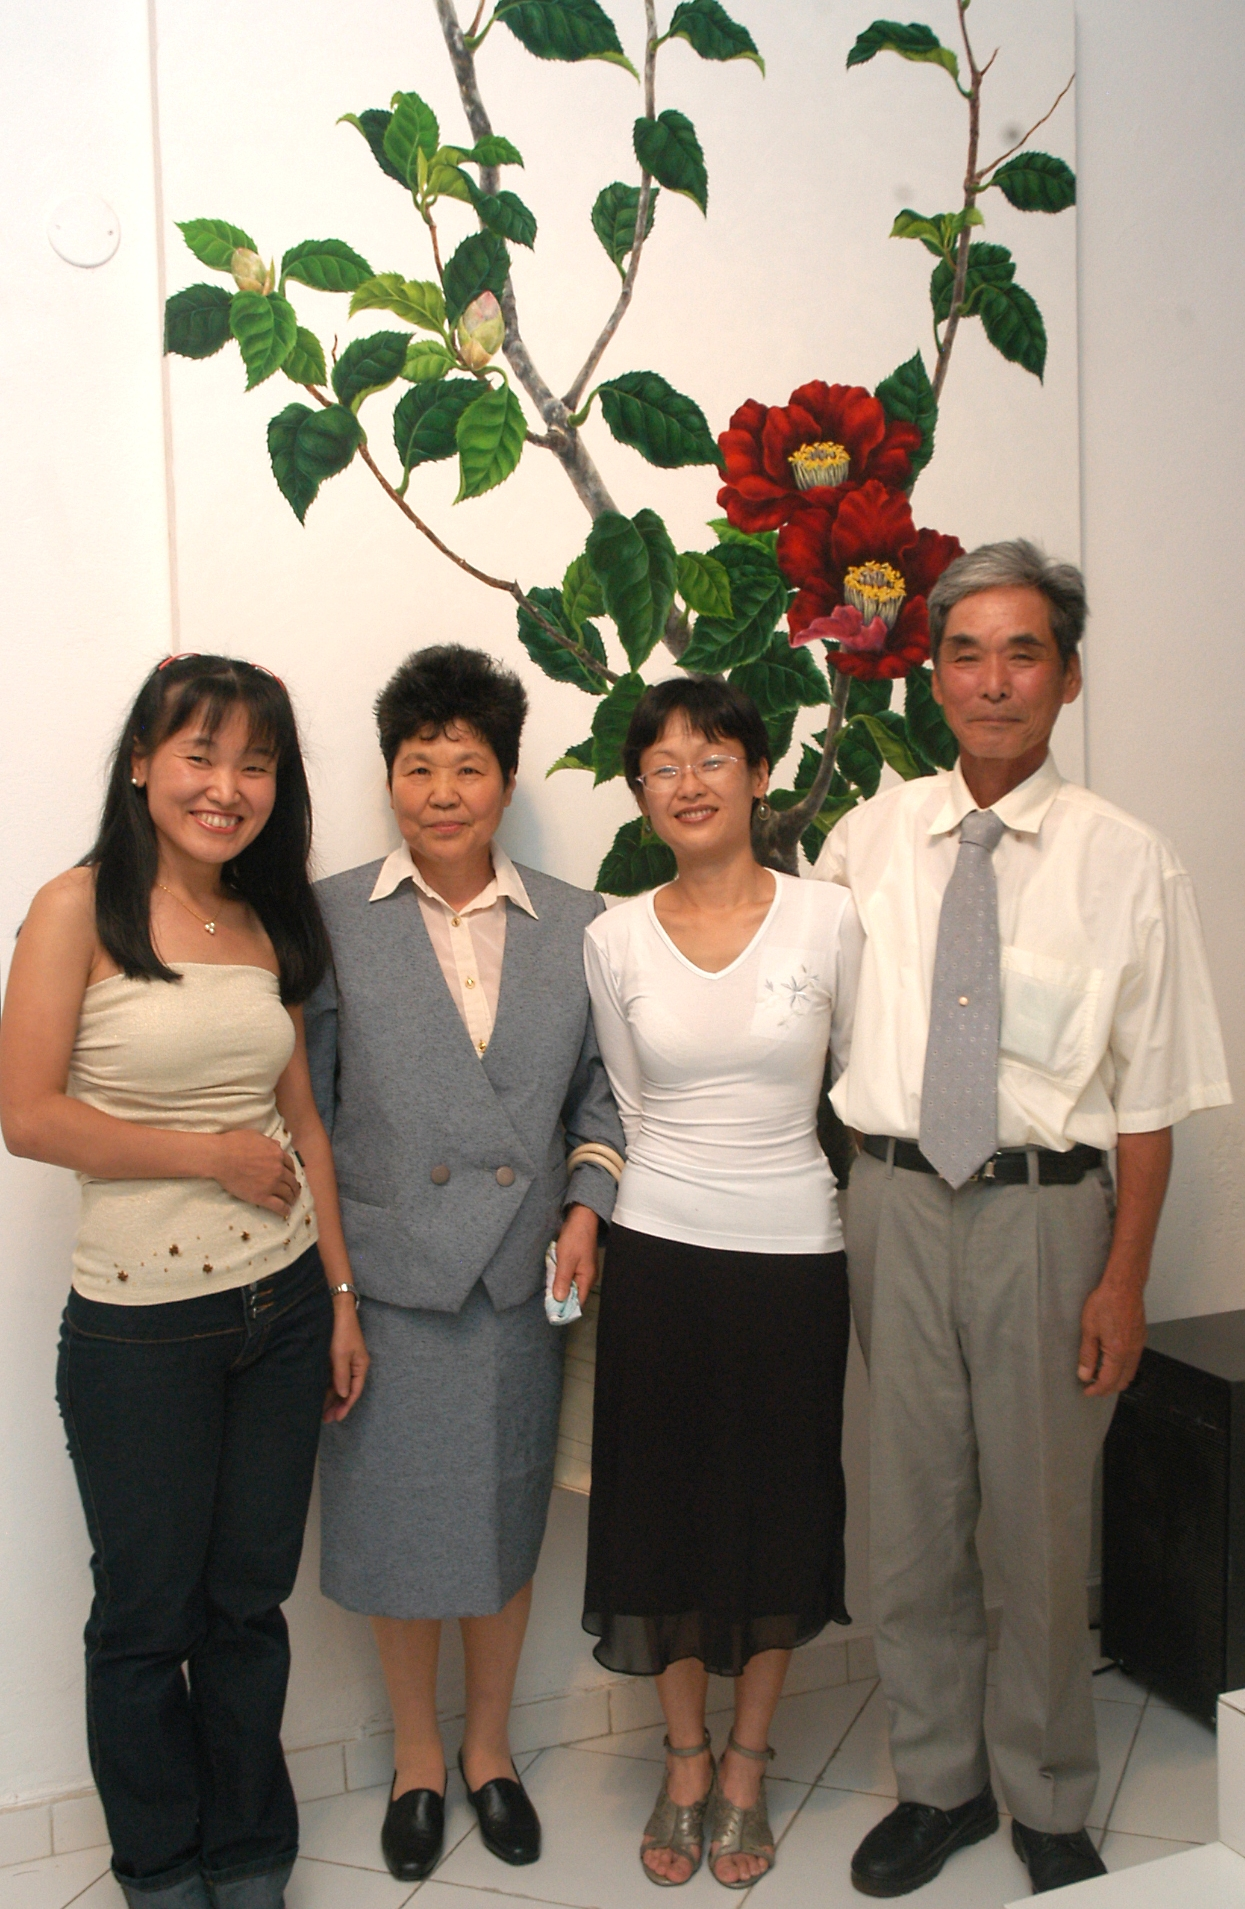 Con madre, hermana y padre (2008)